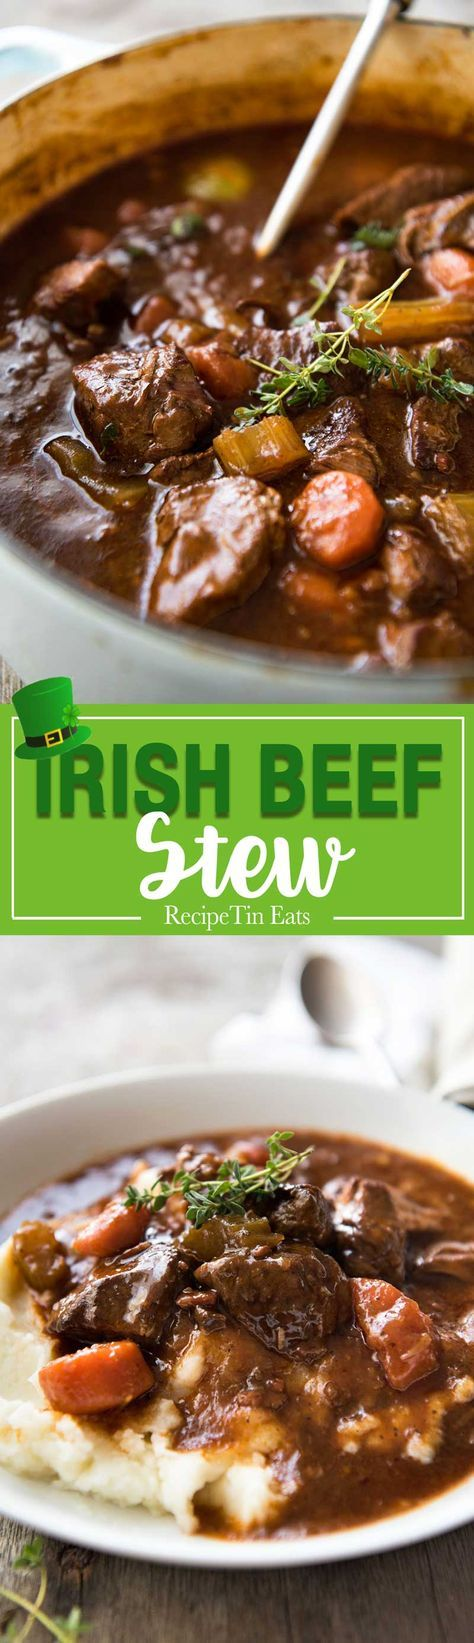 Irish Beef and Guinness Stew - The king of all stews! Fork tender beef in a rich thick sauce. Easy to make, just requires patience! Slow cooker, stove, oven and pressure cooker directions provided. http://www.recipetineats.com